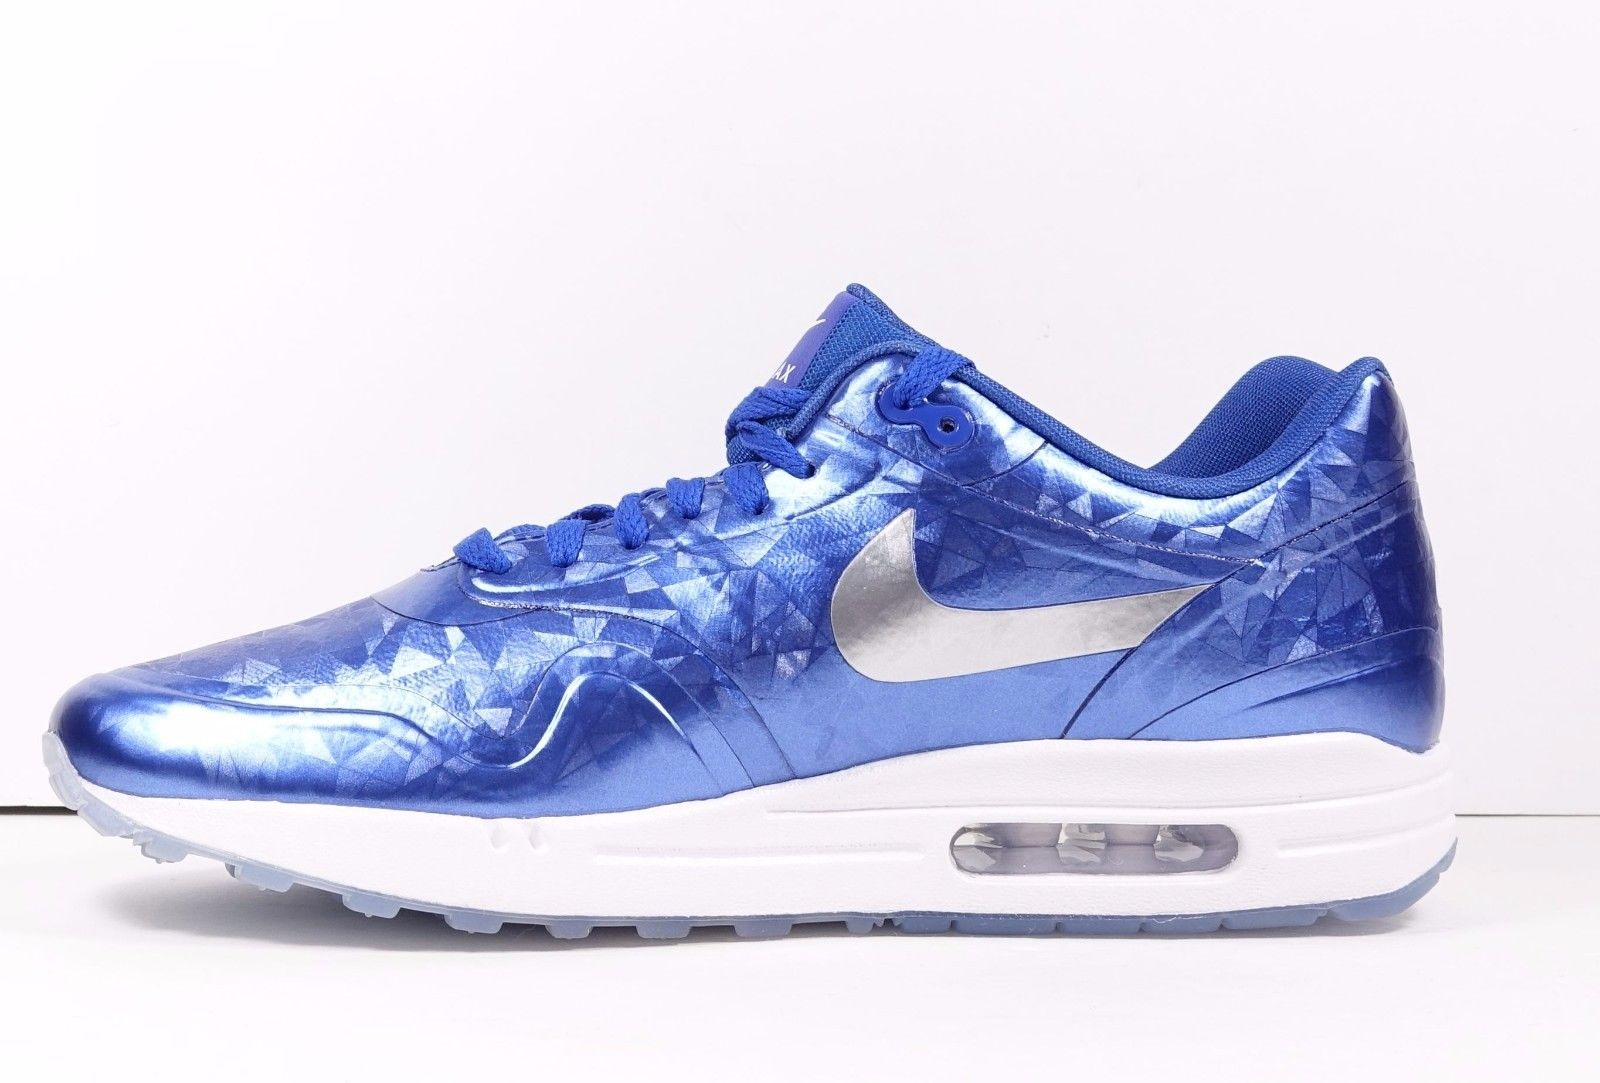 timeless design 52a55 75ef2 Nike Air Max 1 ID Blue White Ice Sole Sz 10.5 Reflective Blue Silver White  New